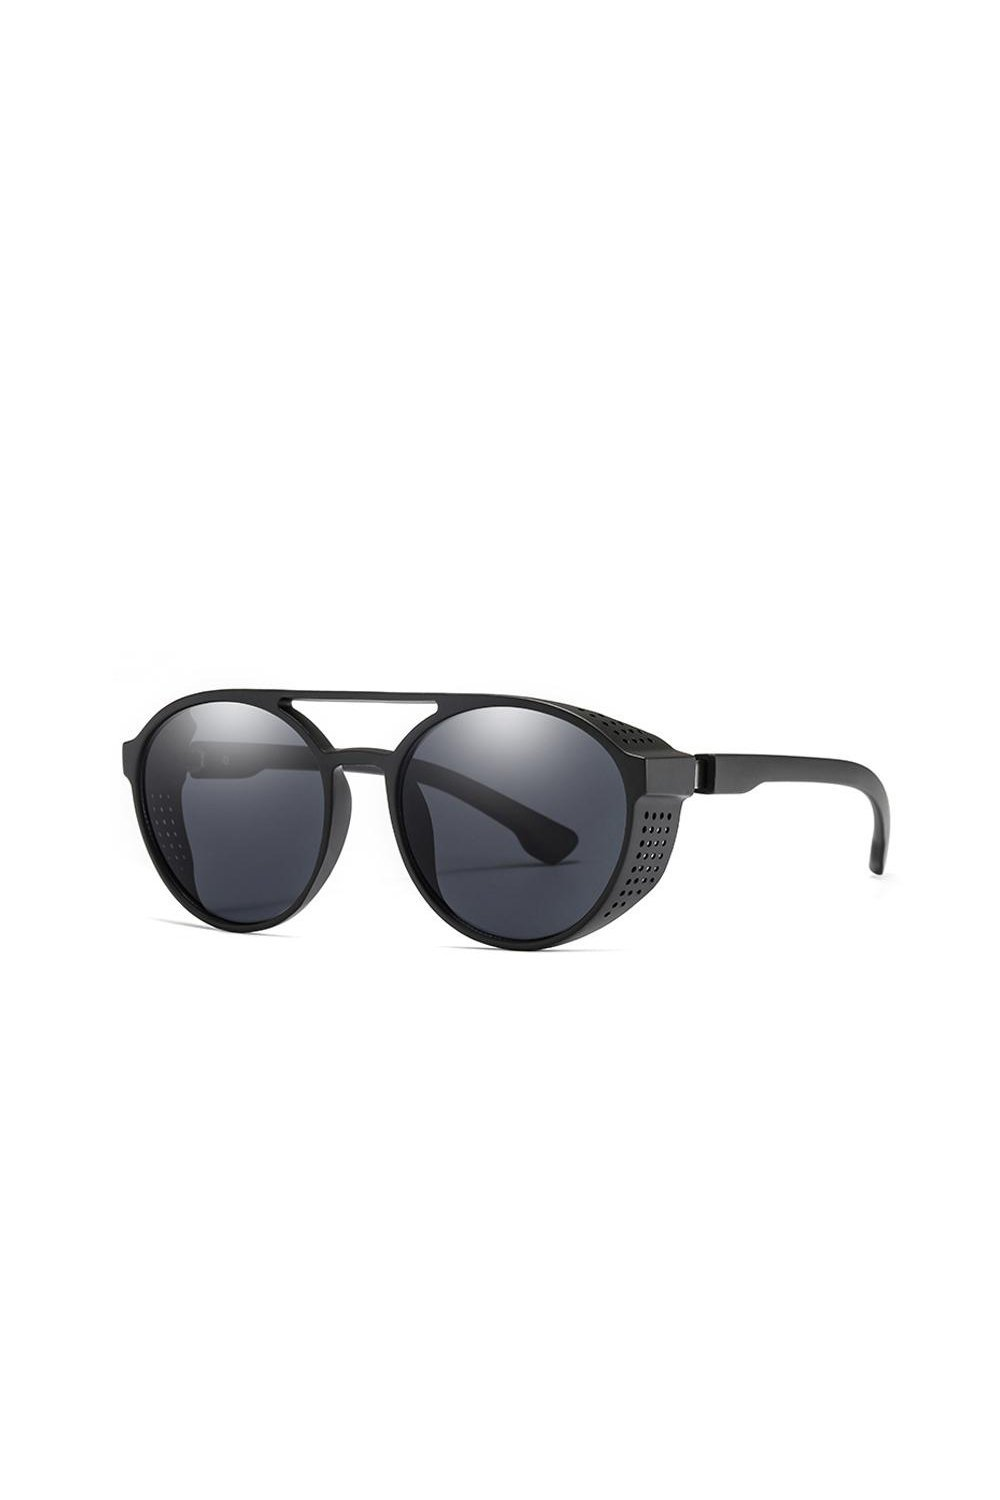 Sunglasses - Side Grill Aviator Sunglasses Black